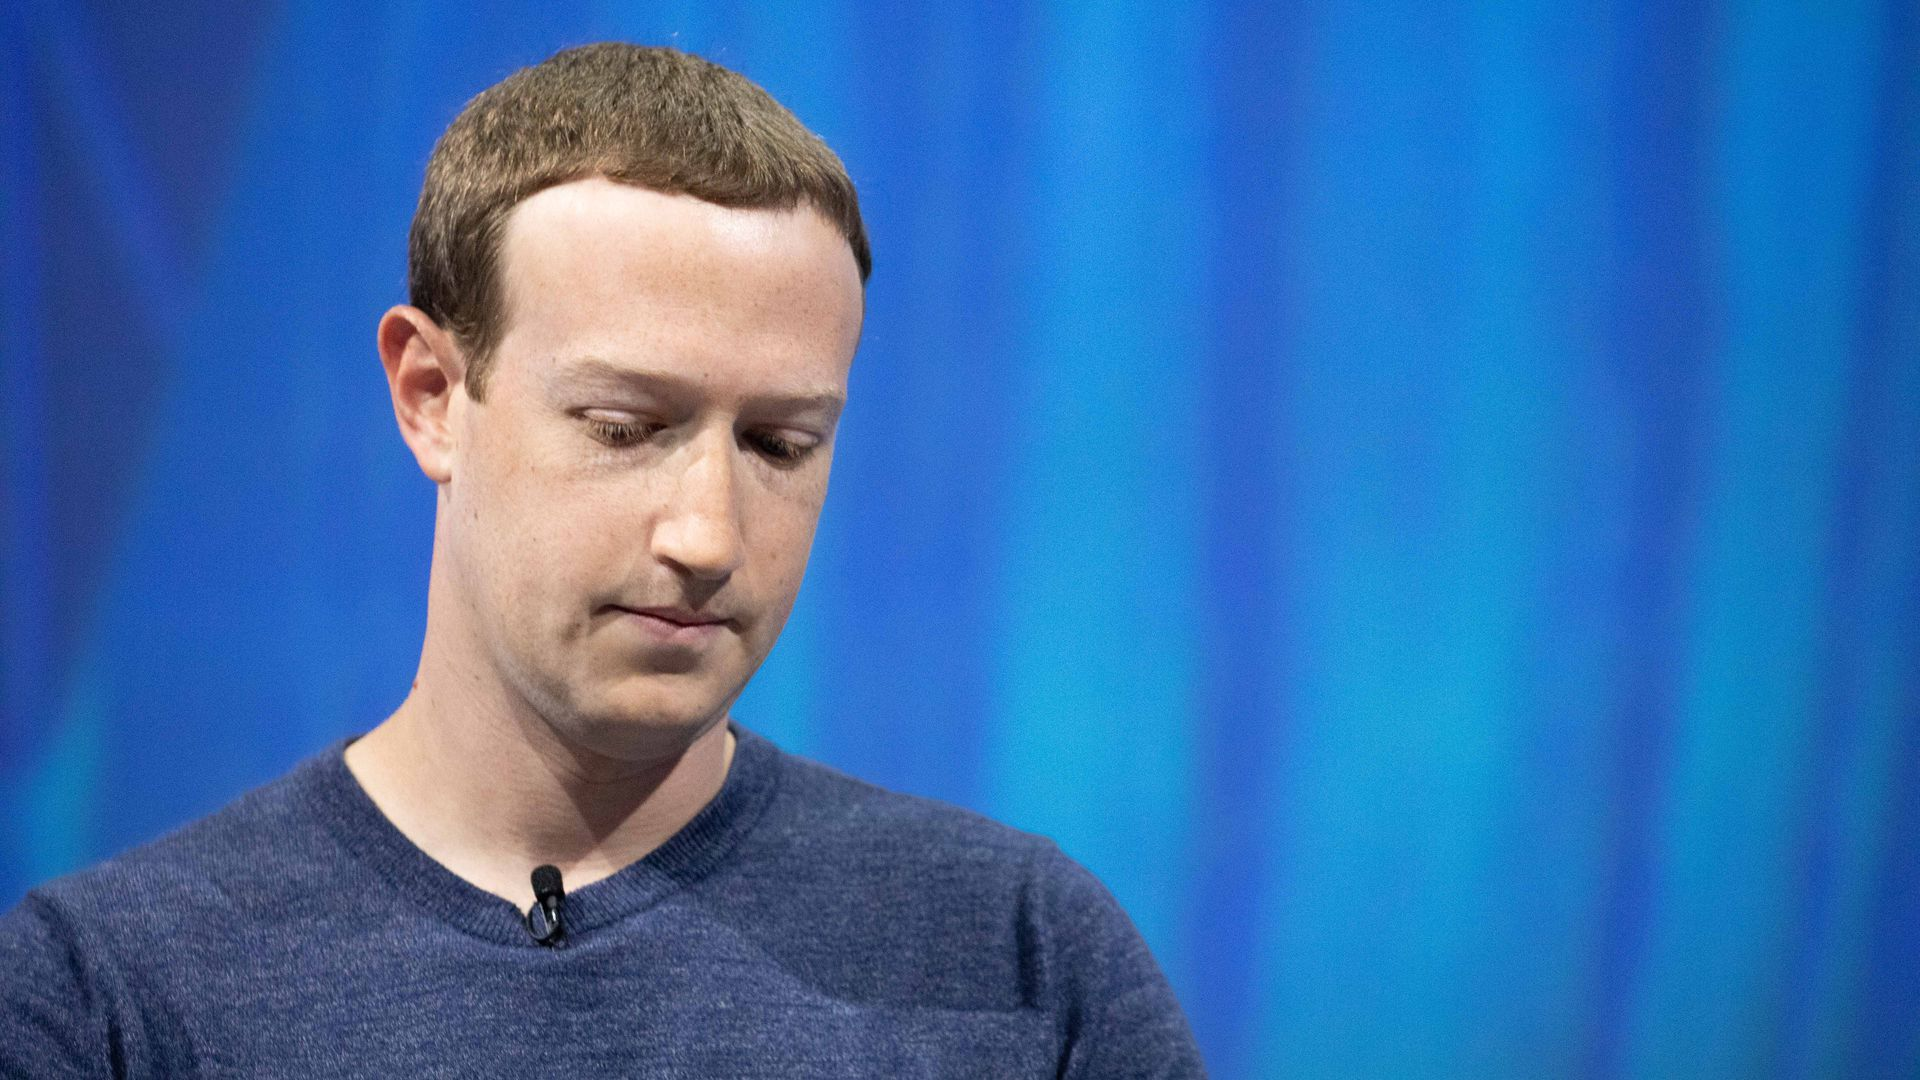 Mark Zuckerberg, eyes cast downward